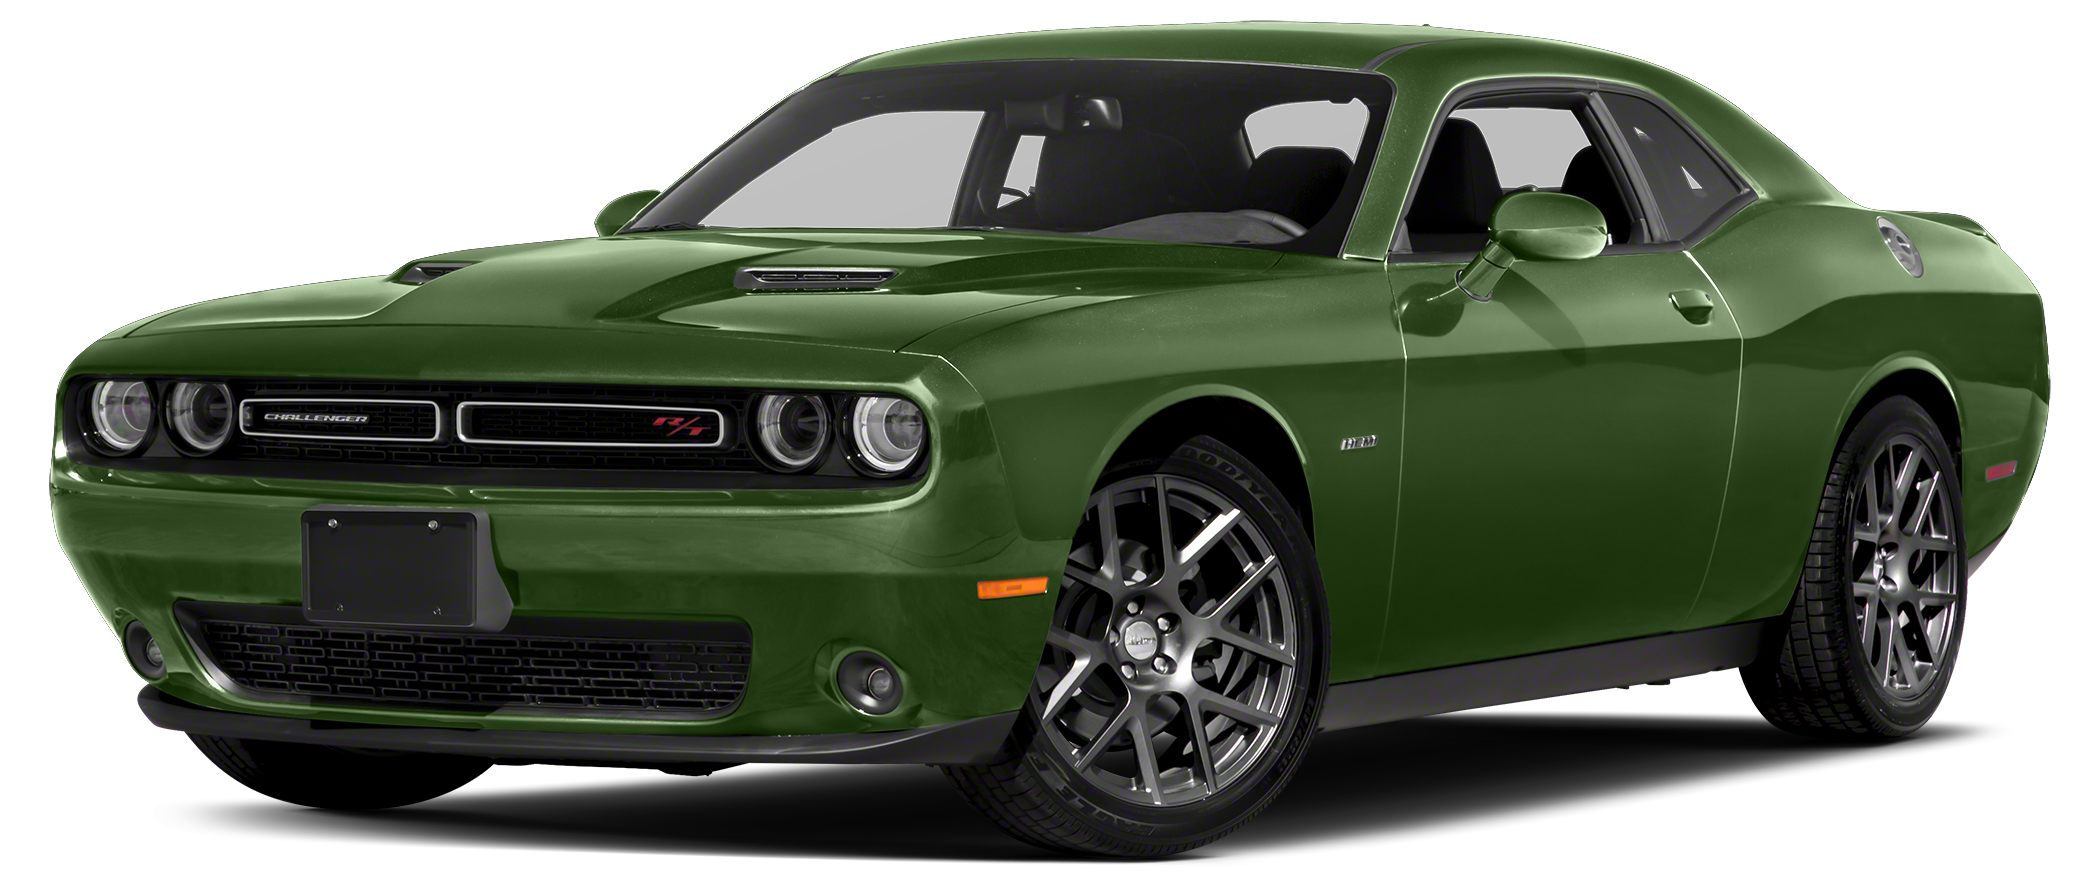 2018 Dodge Challenger RT 392 SPECIAL ONLINE PRICE INCLUDES 2250 IN REBATES THAT ALL CUSTOMERS Q